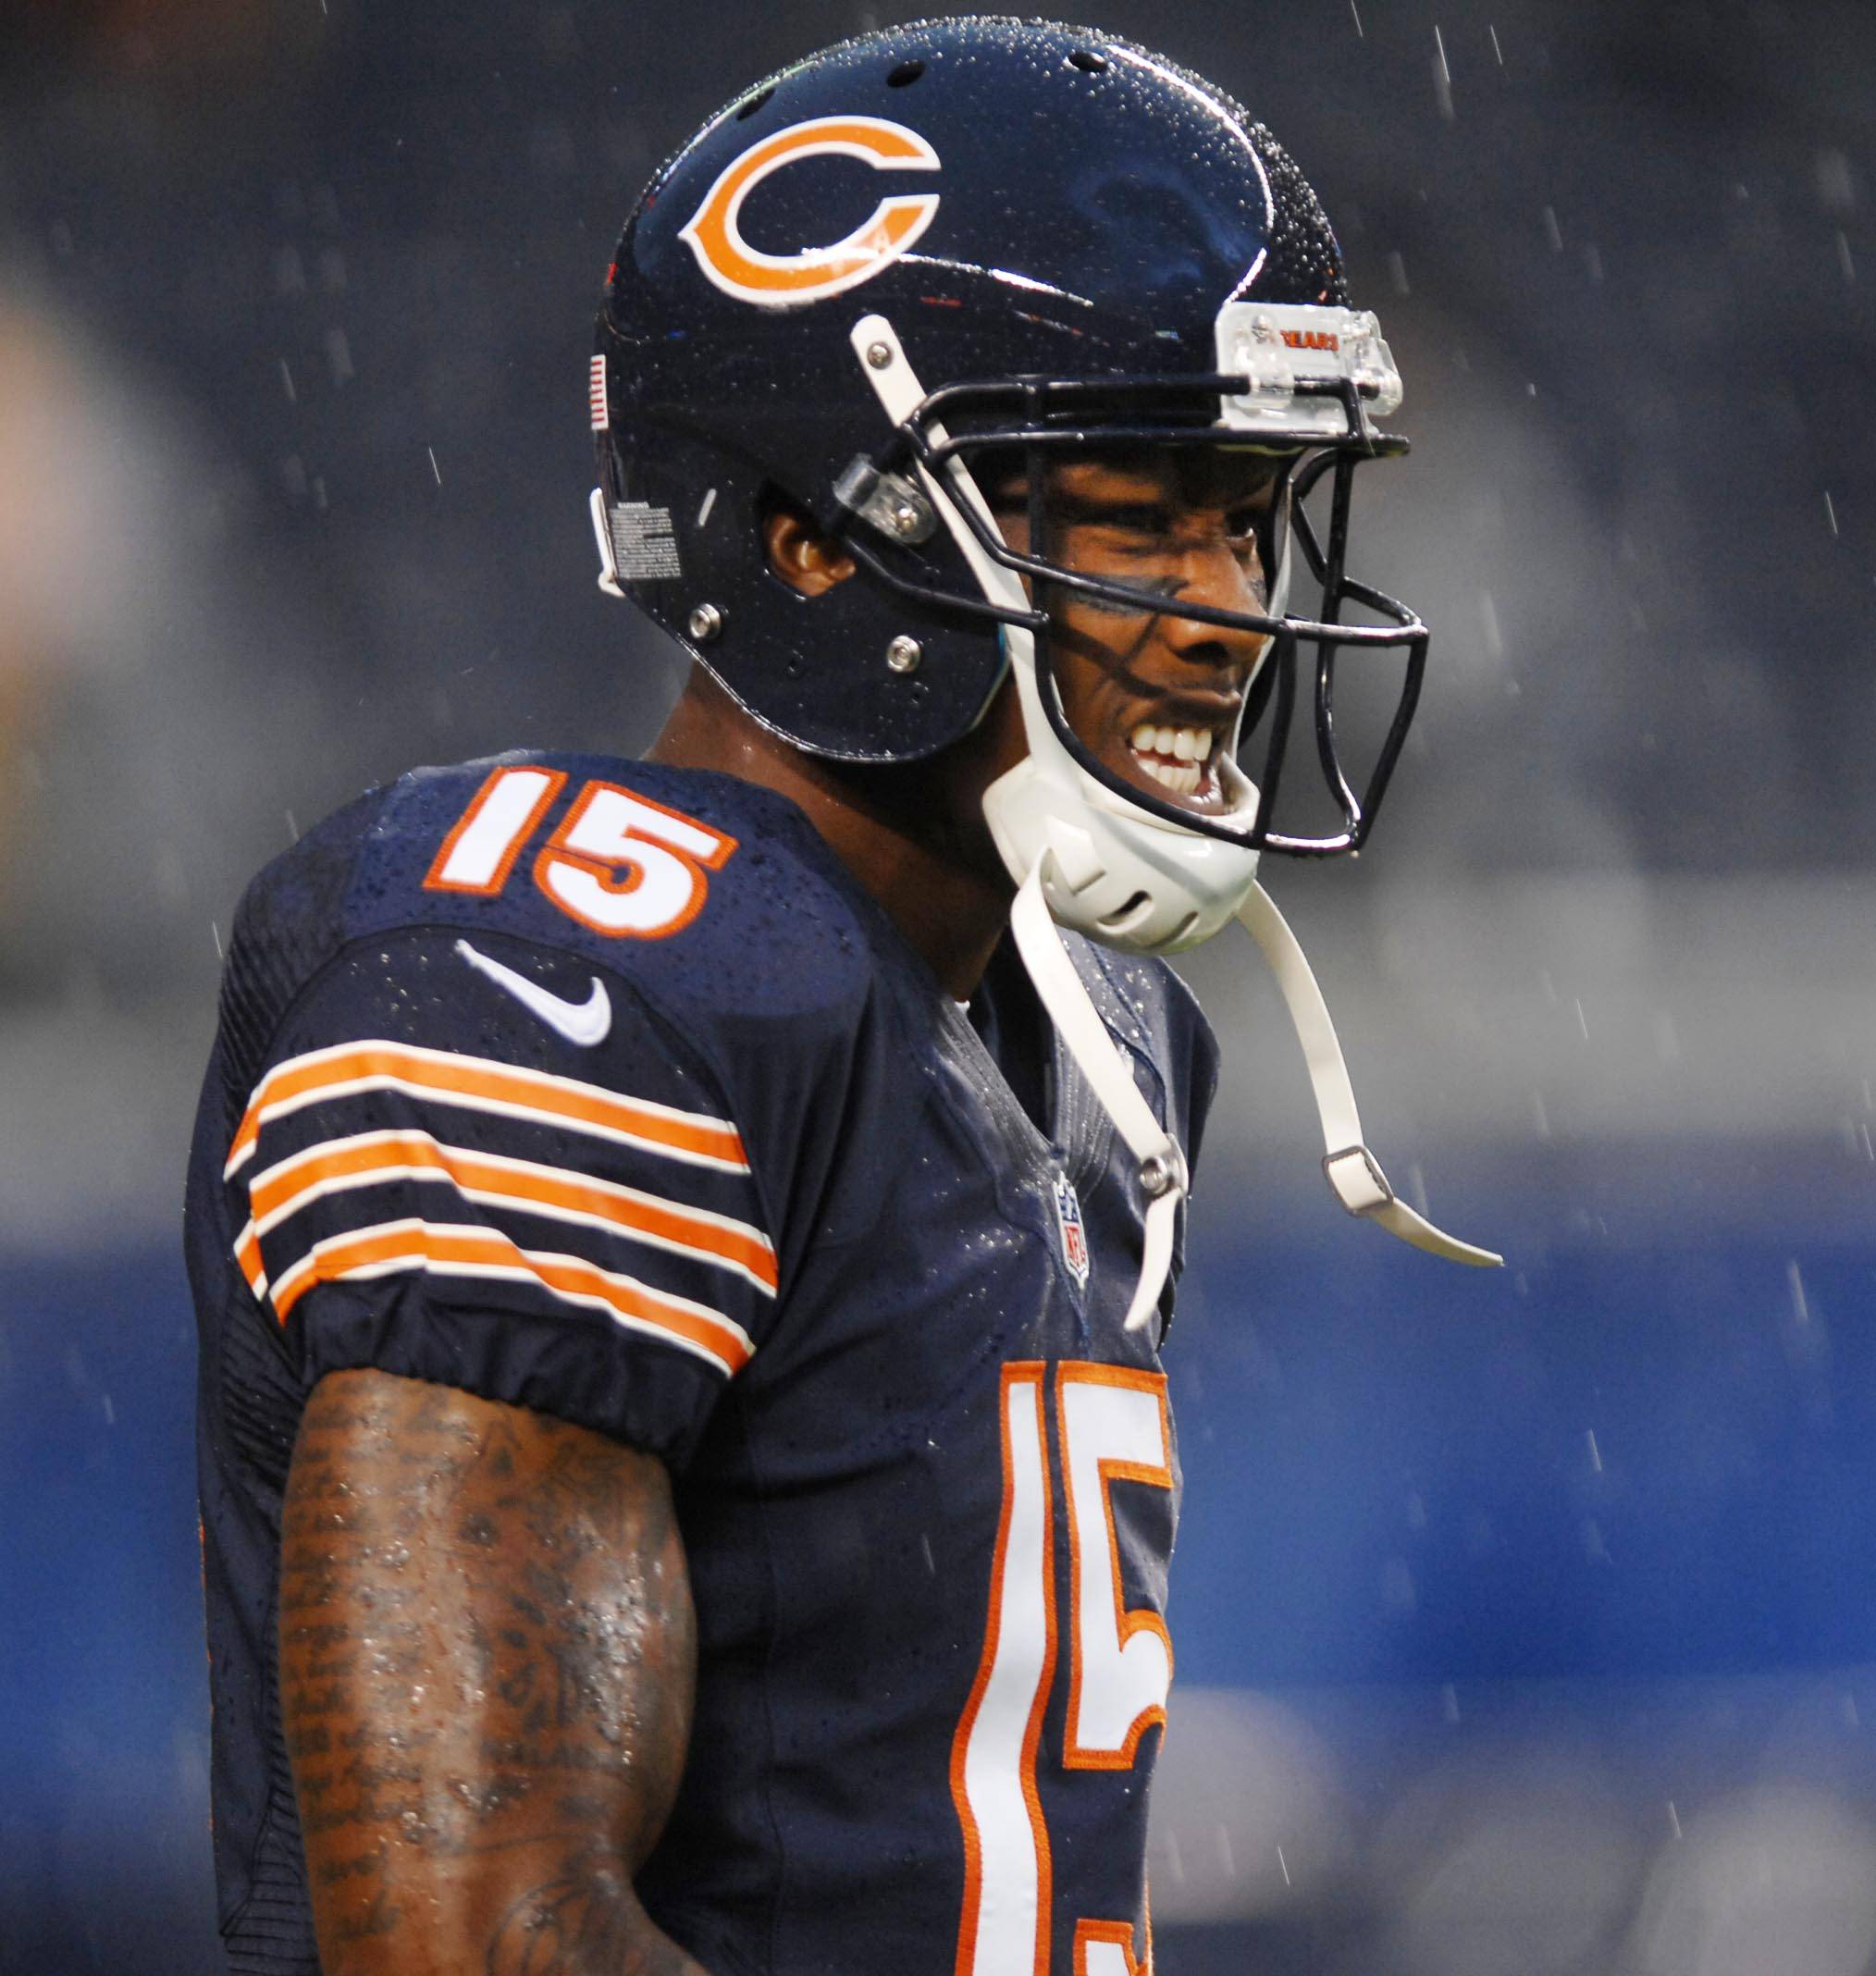 Marshall gets emotional over Bears deal